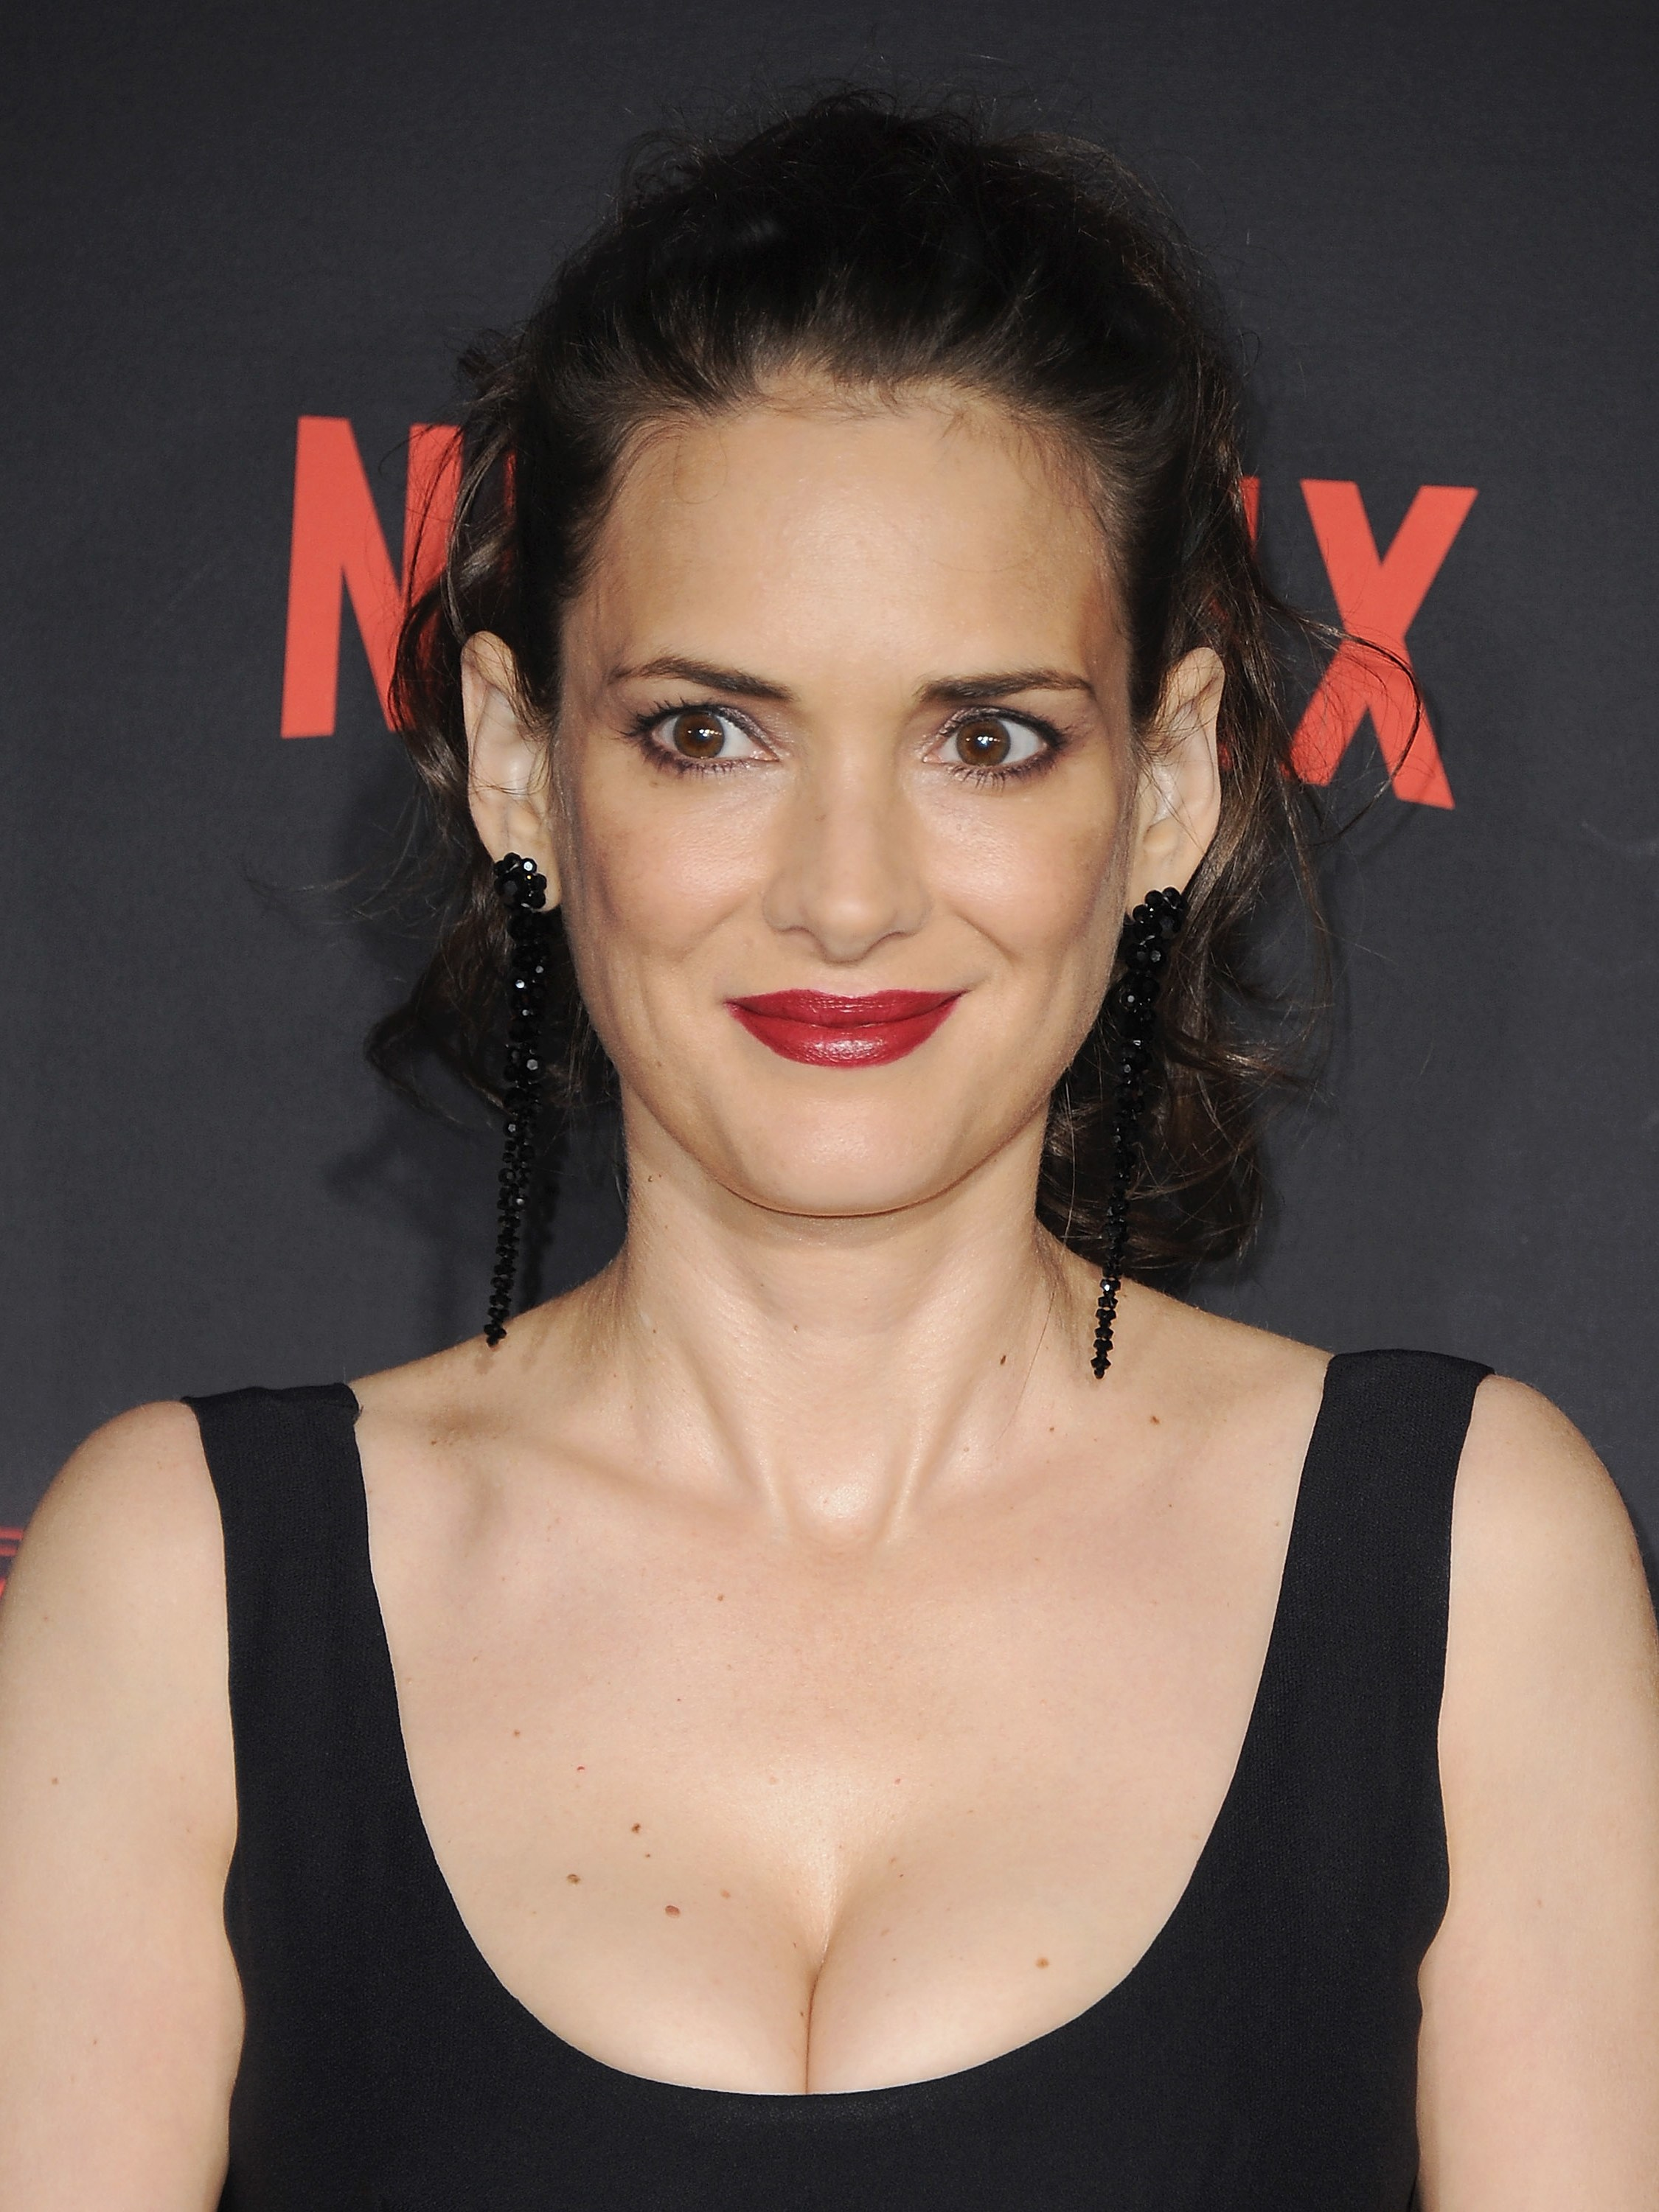 Actress Winona Ryder during the premiere of Stranger Things